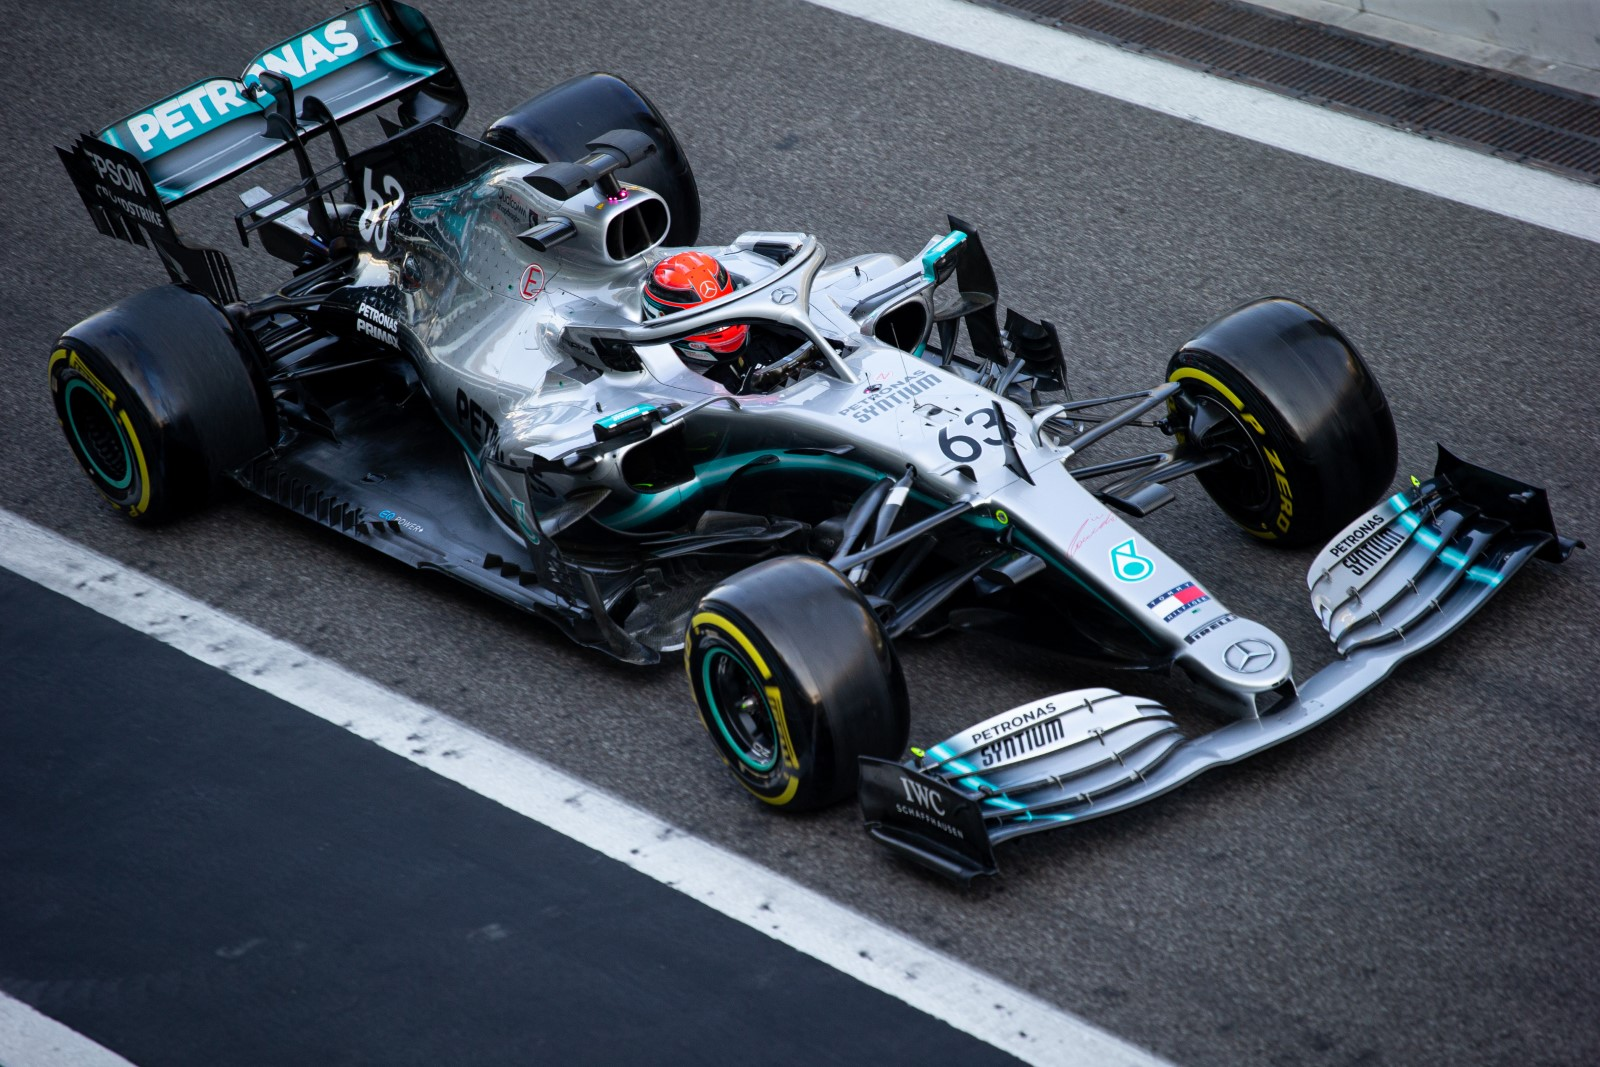 Lewis Hamilton tests positive for coronavirus, will miss Sakhir Grand Prix